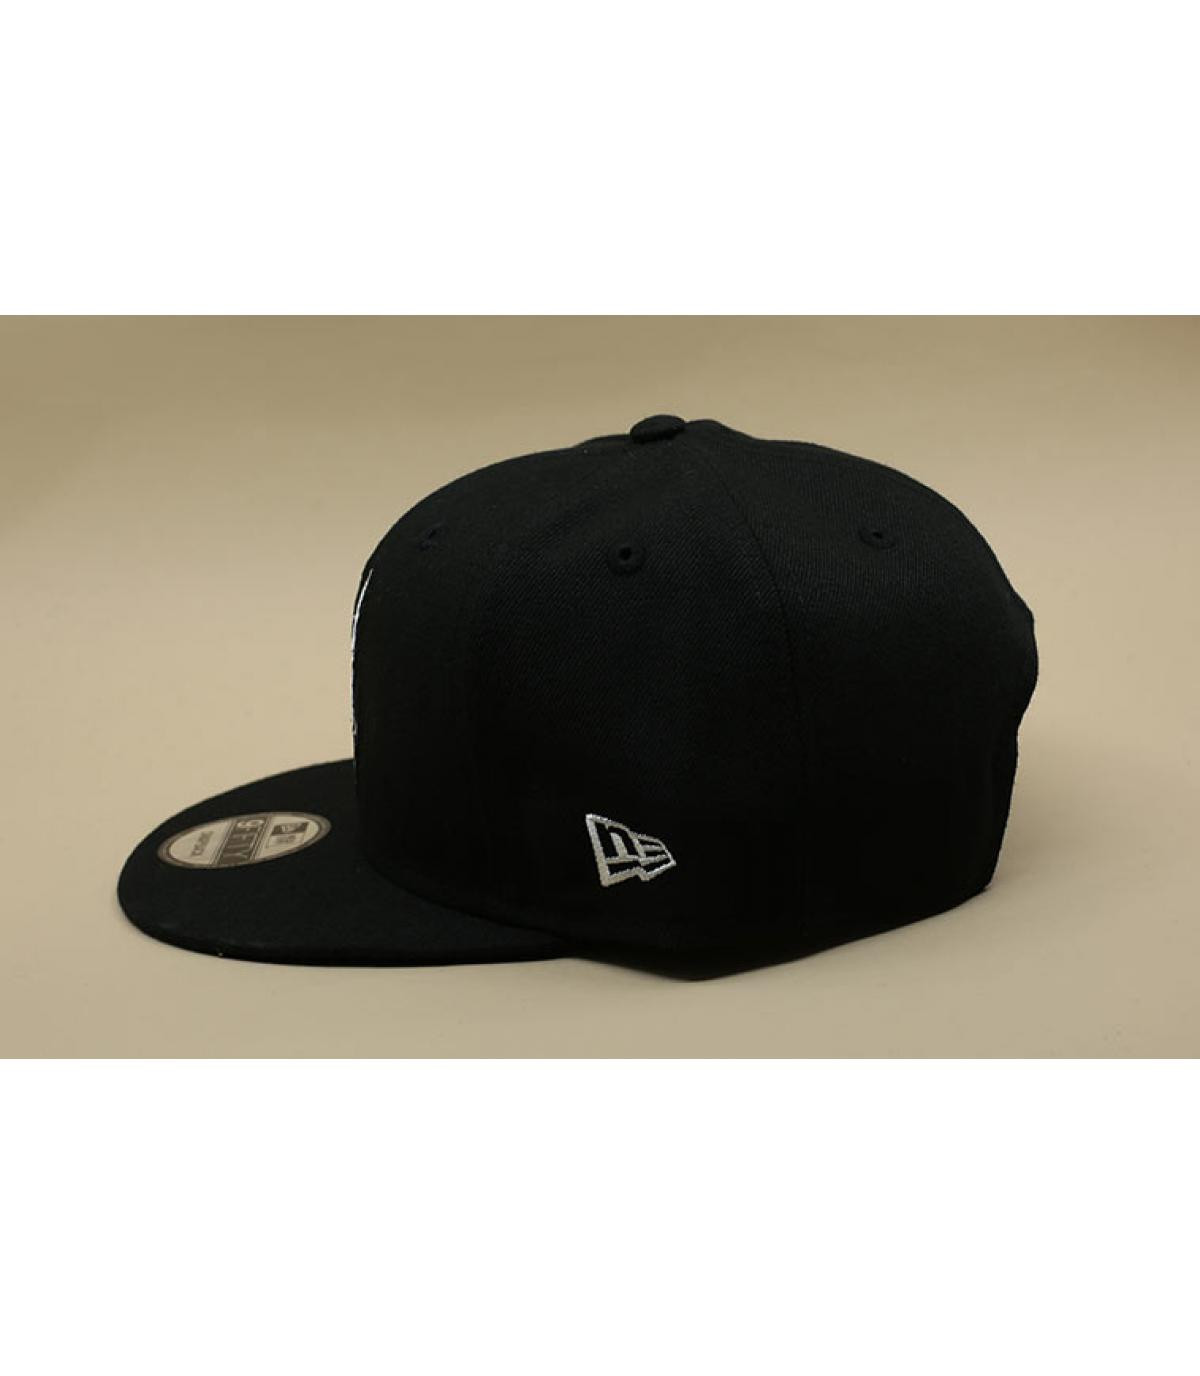 Détails Snapback Call of Duty MW - image 5